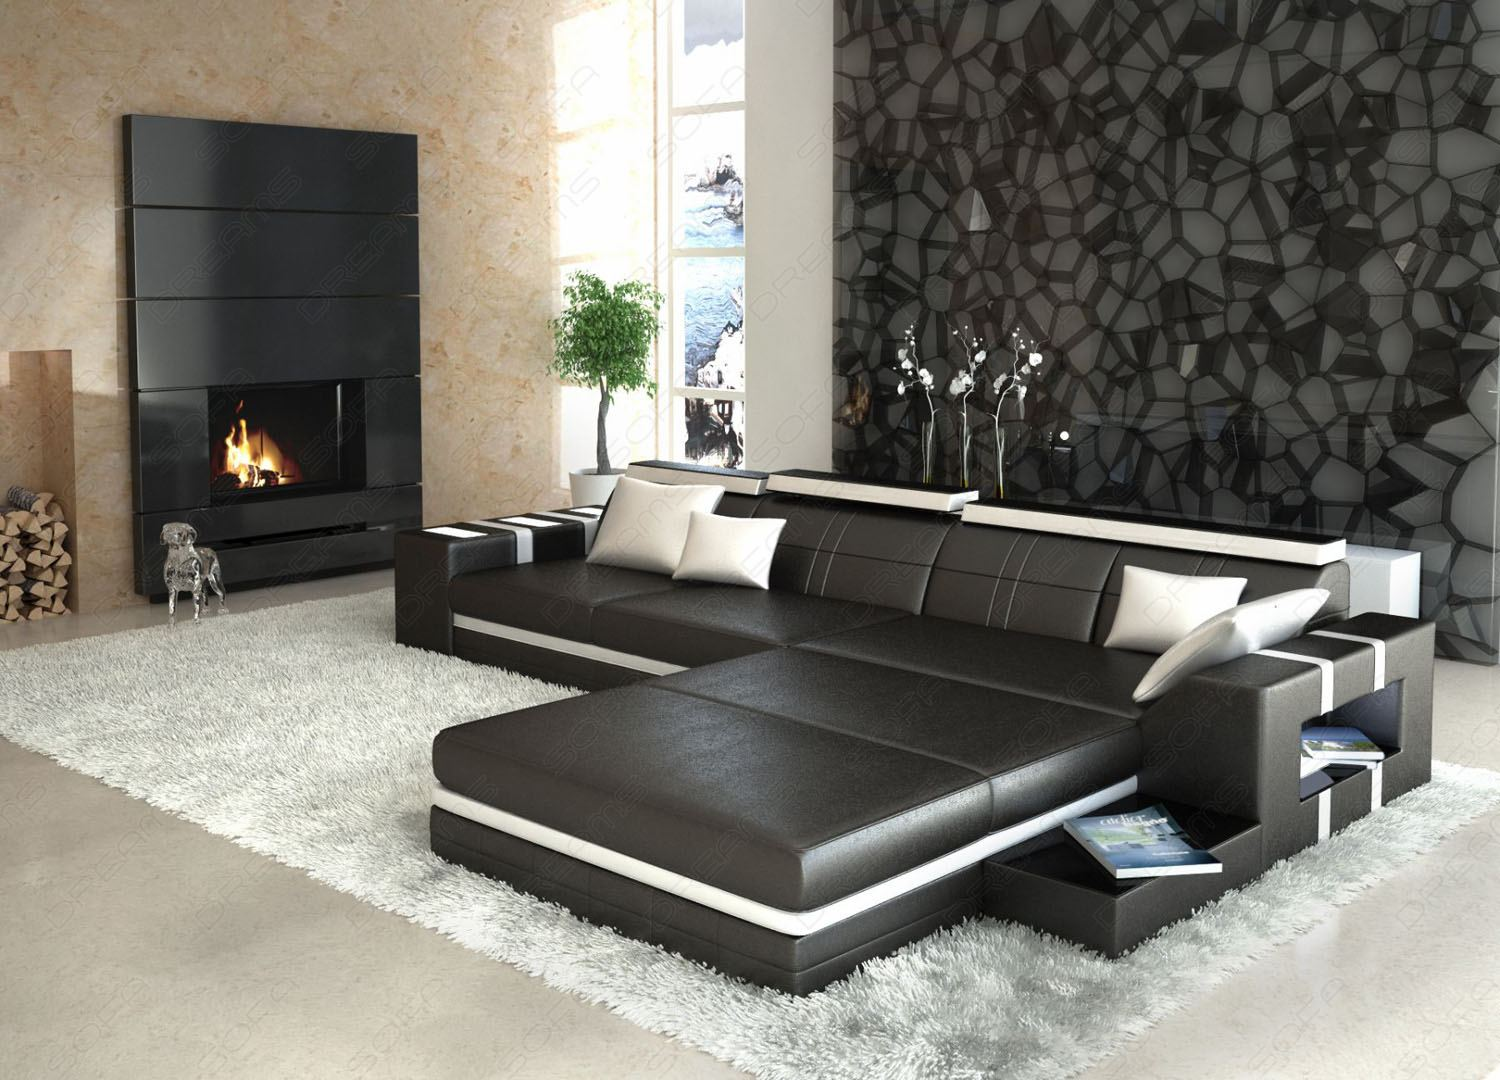 ledersofa asti l form schwarz weiss mit beleuchtung ledercouch lagerware ebay. Black Bedroom Furniture Sets. Home Design Ideas